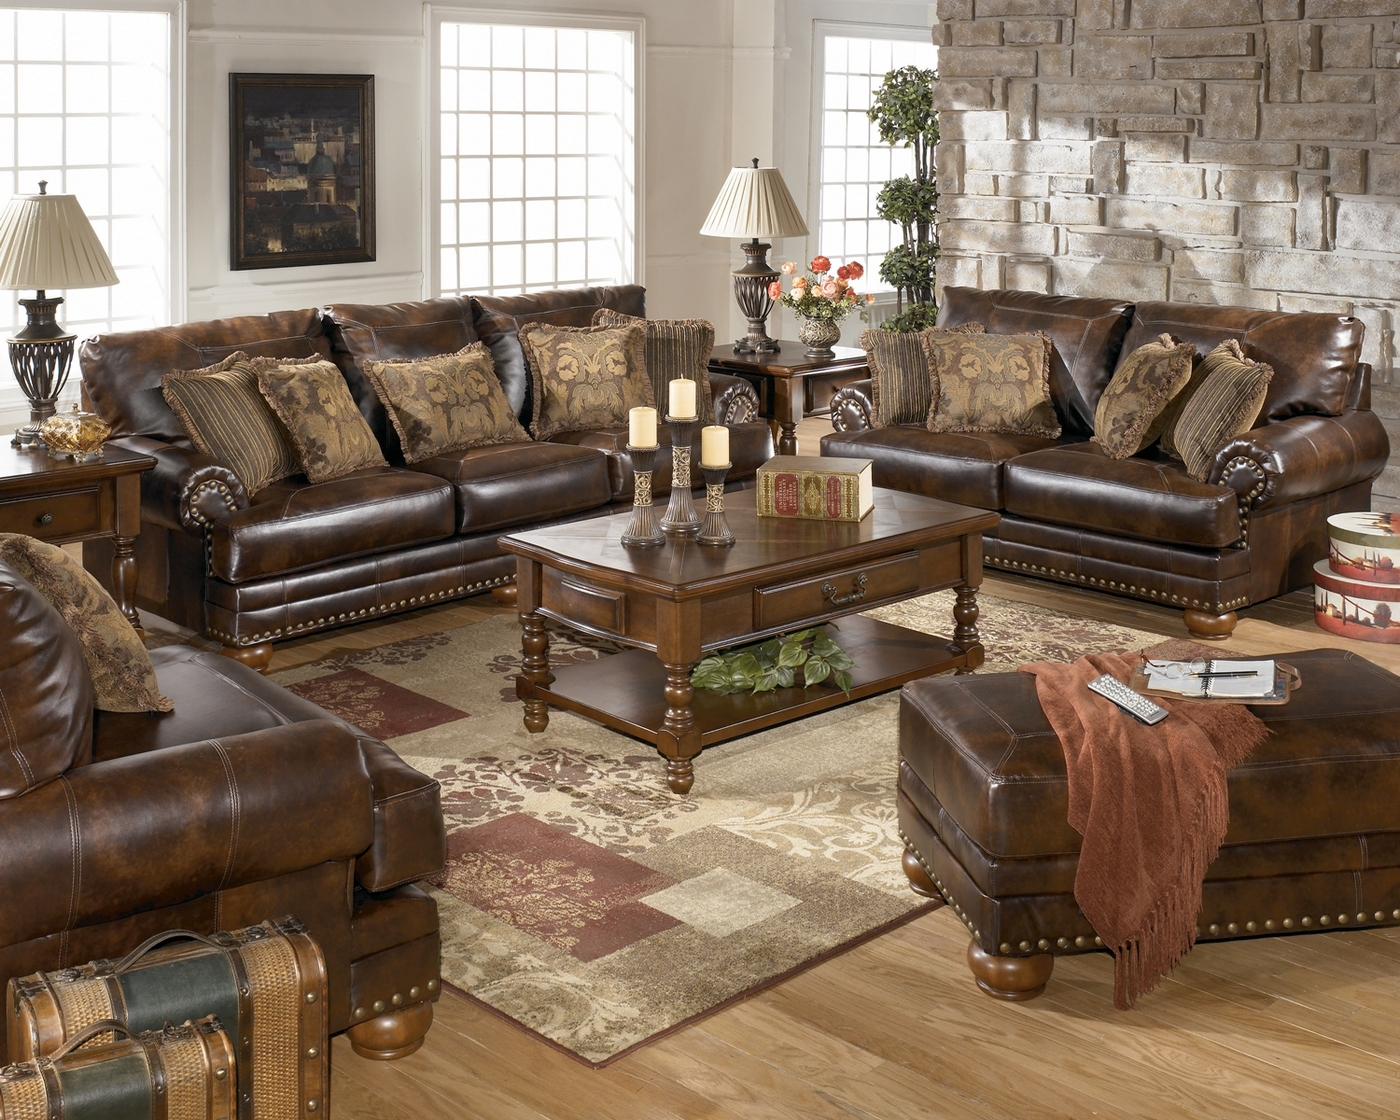 antique leather sofa traditional living room furniture set. Black Bedroom Furniture Sets. Home Design Ideas